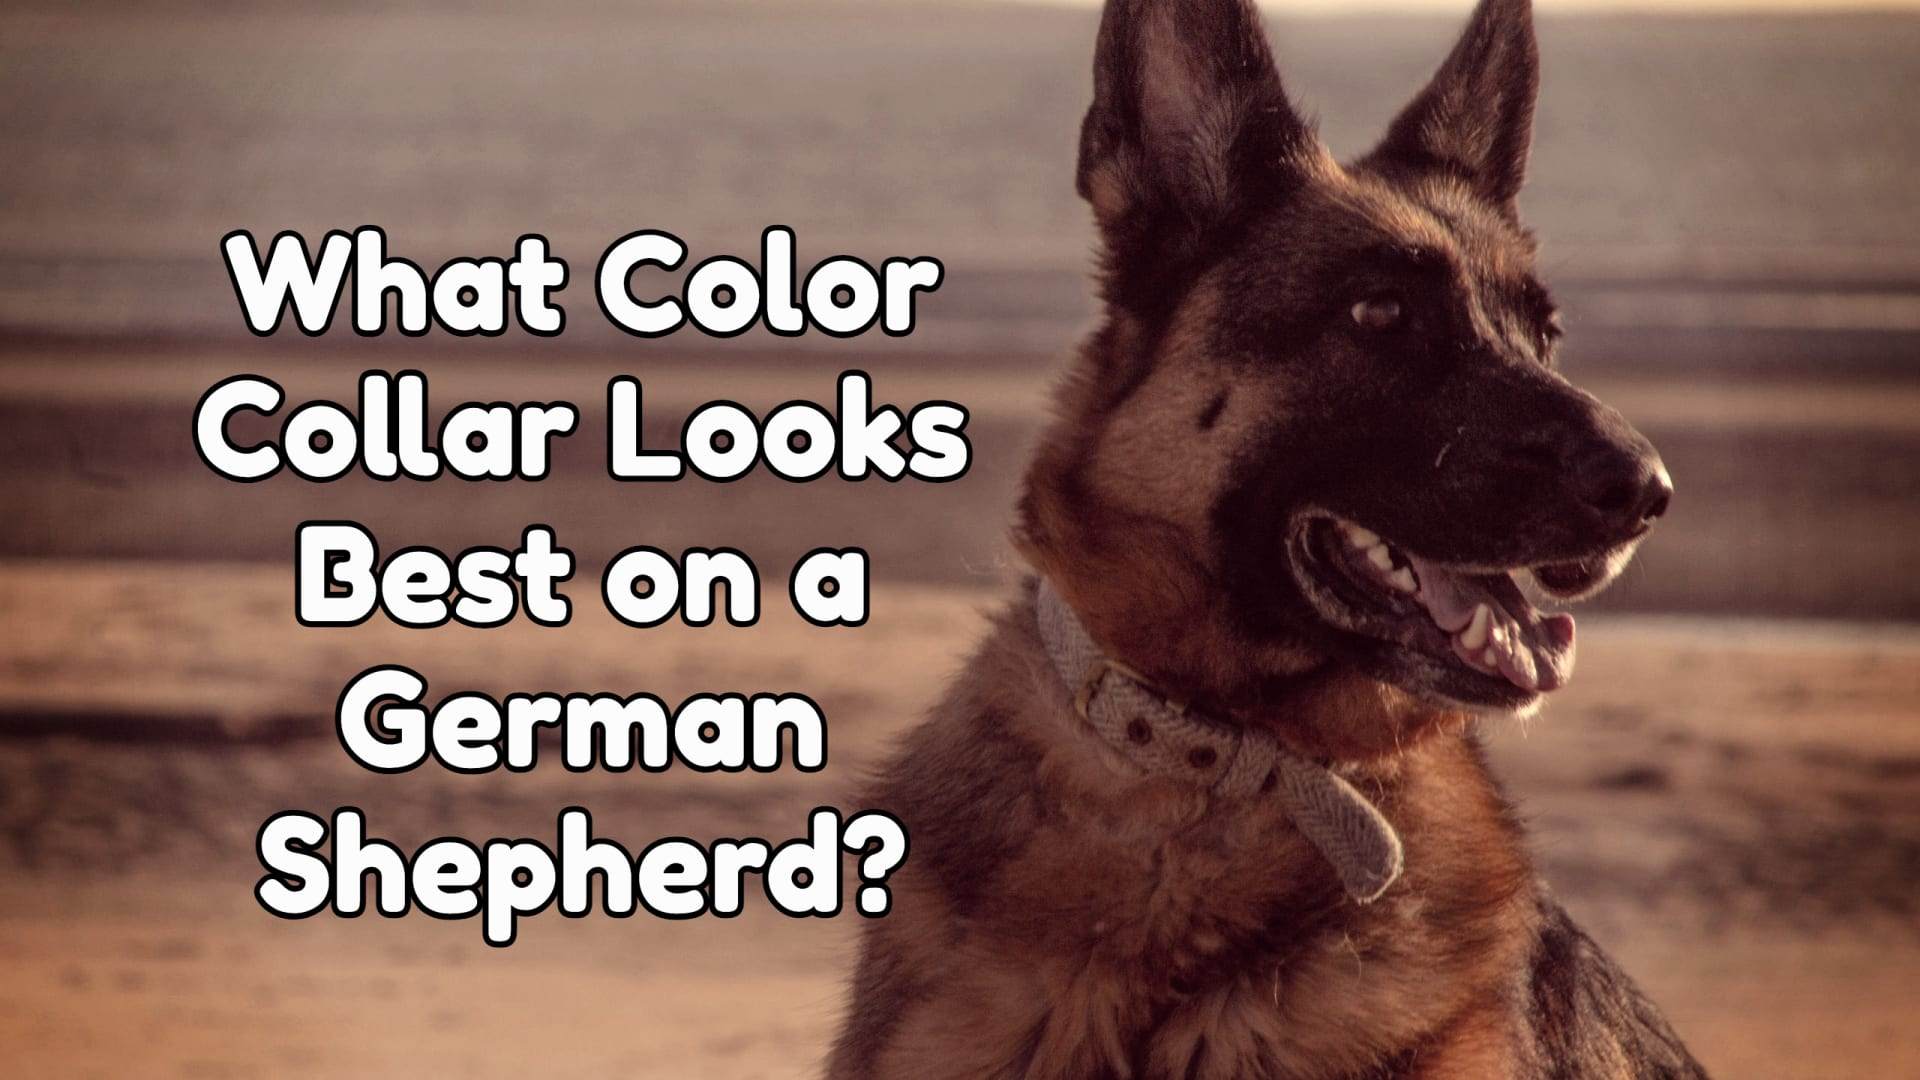 What Color Collar Looks Best on a German shepherd?